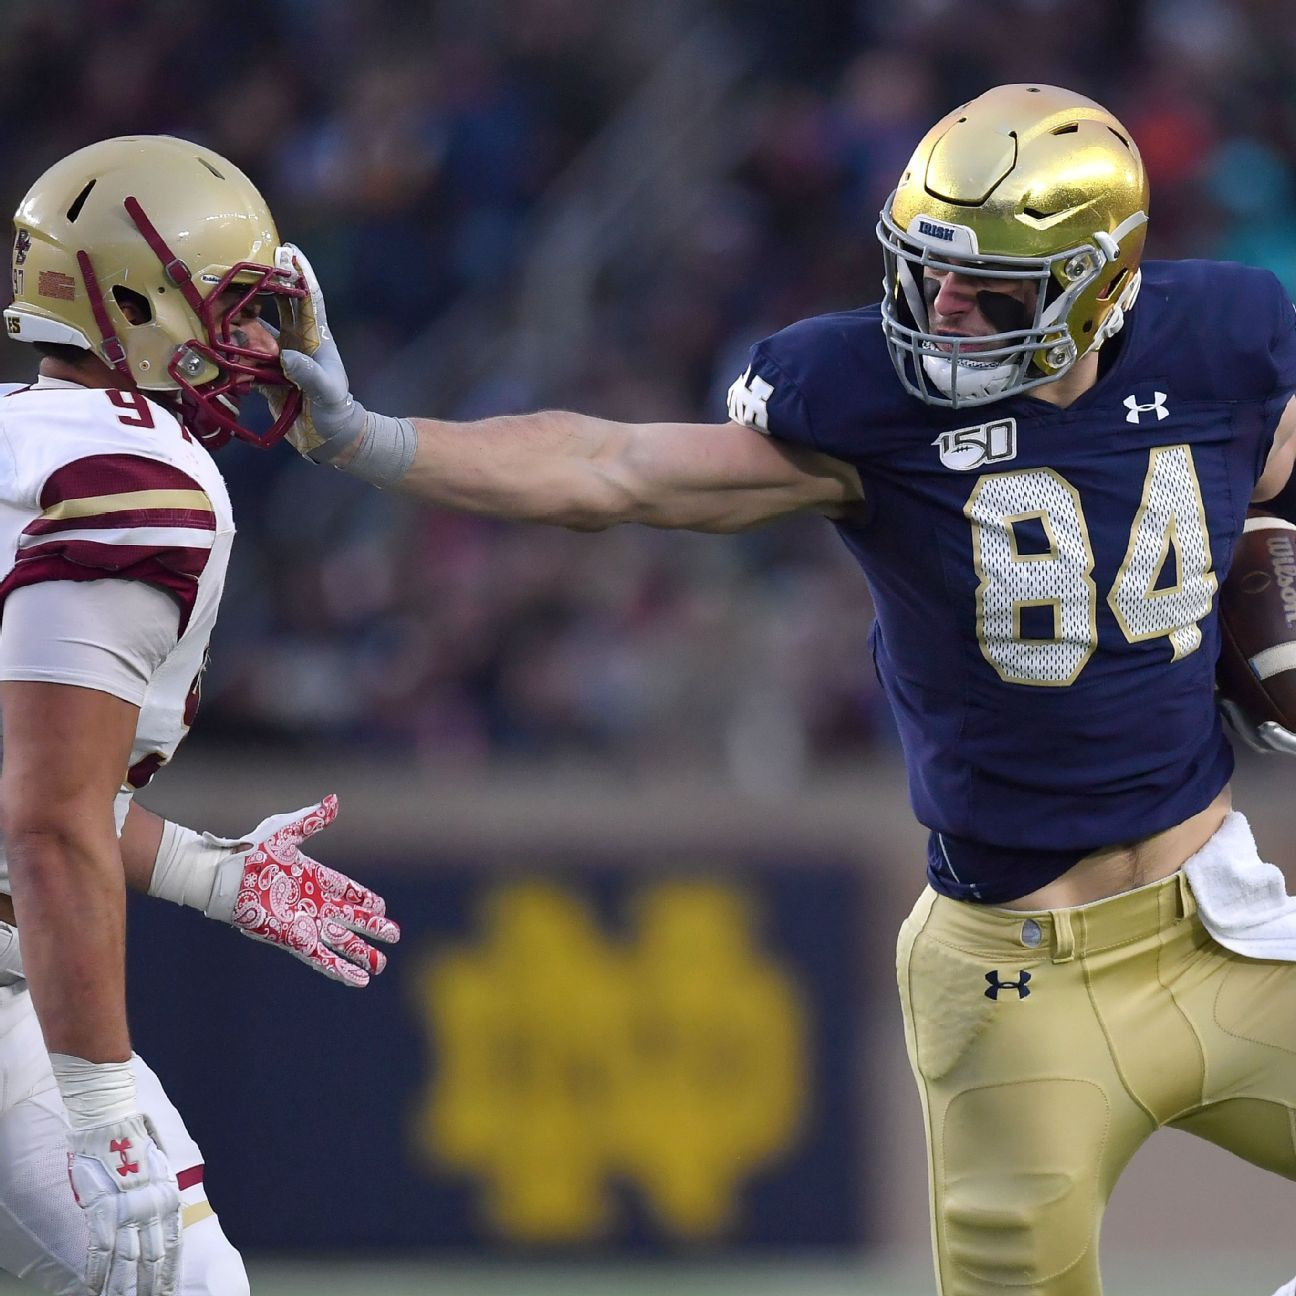 Bears Now Have 10 Tight Ends After Drafting Kmet In 2020 Tight End Nfl Nfl Draft